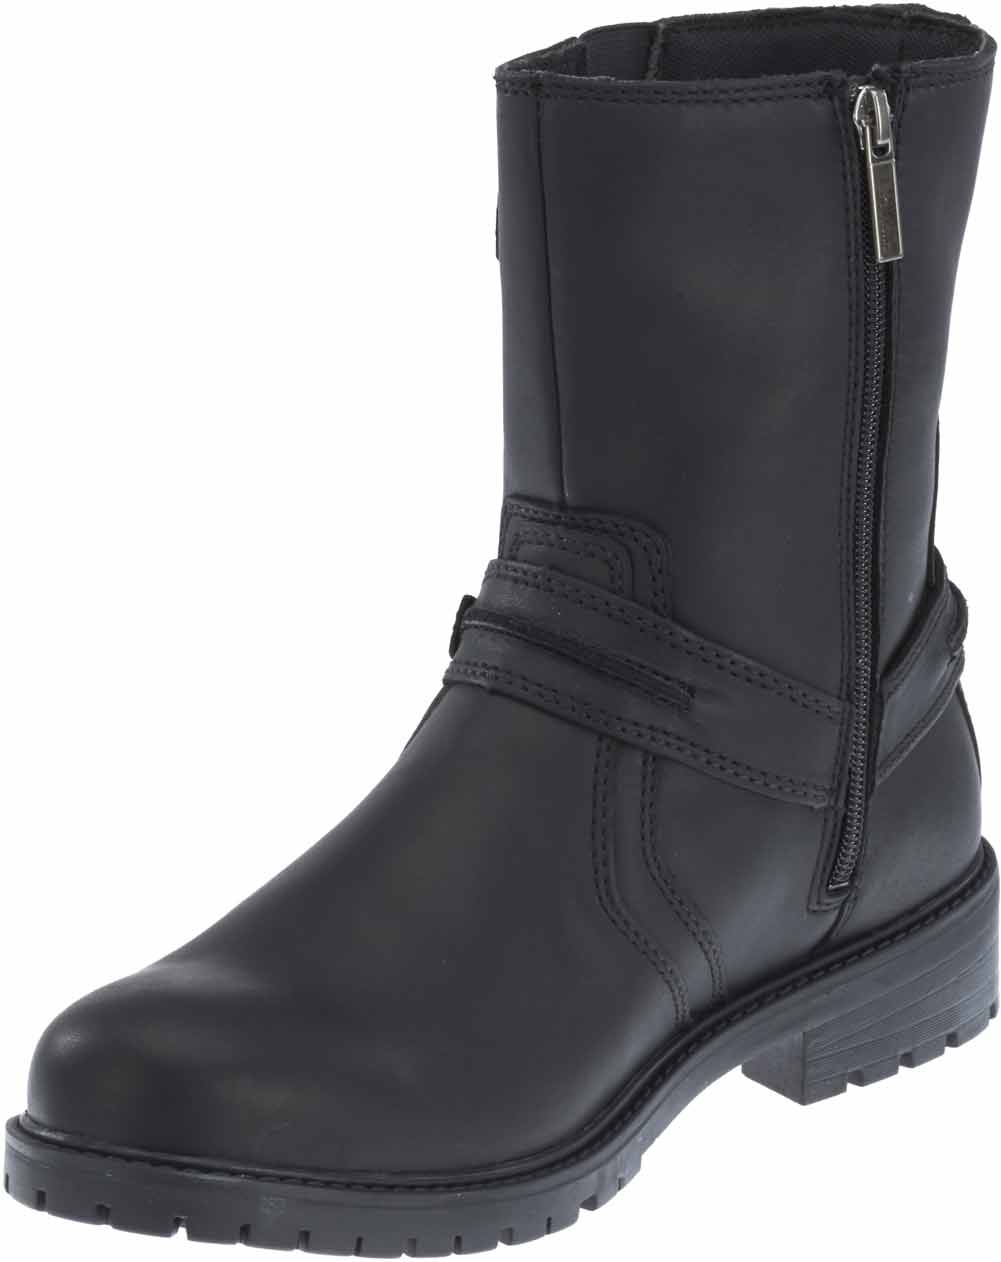 Harley-Davidson Men's Abner 8-Inch Black or Brown Motorcycle Boots ...